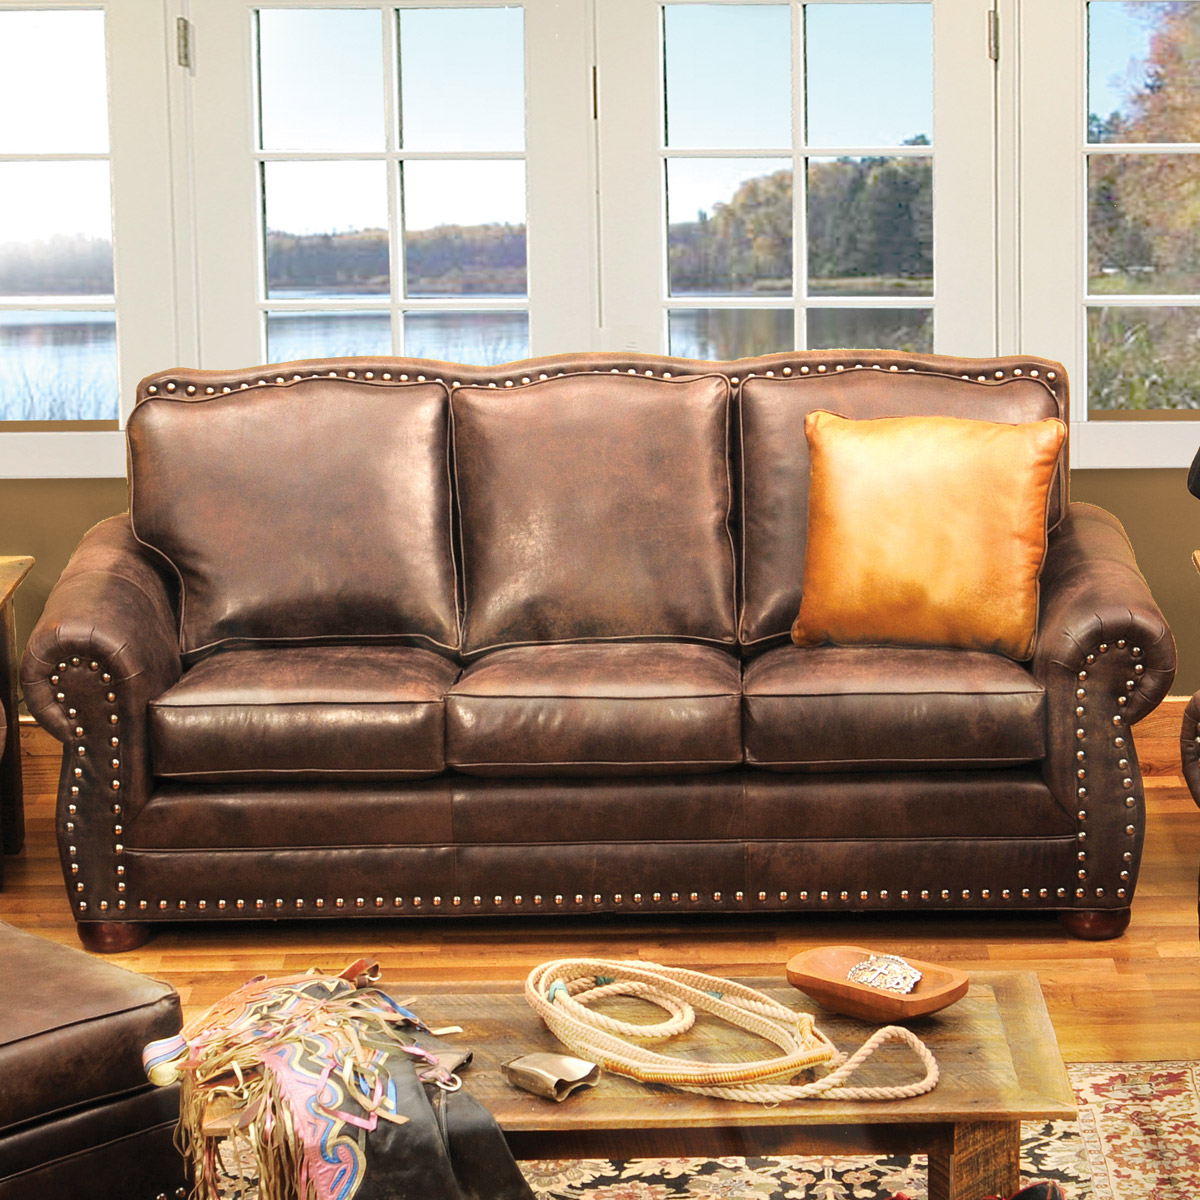 Black Forest Decor Jerome davis sofa in timber leather